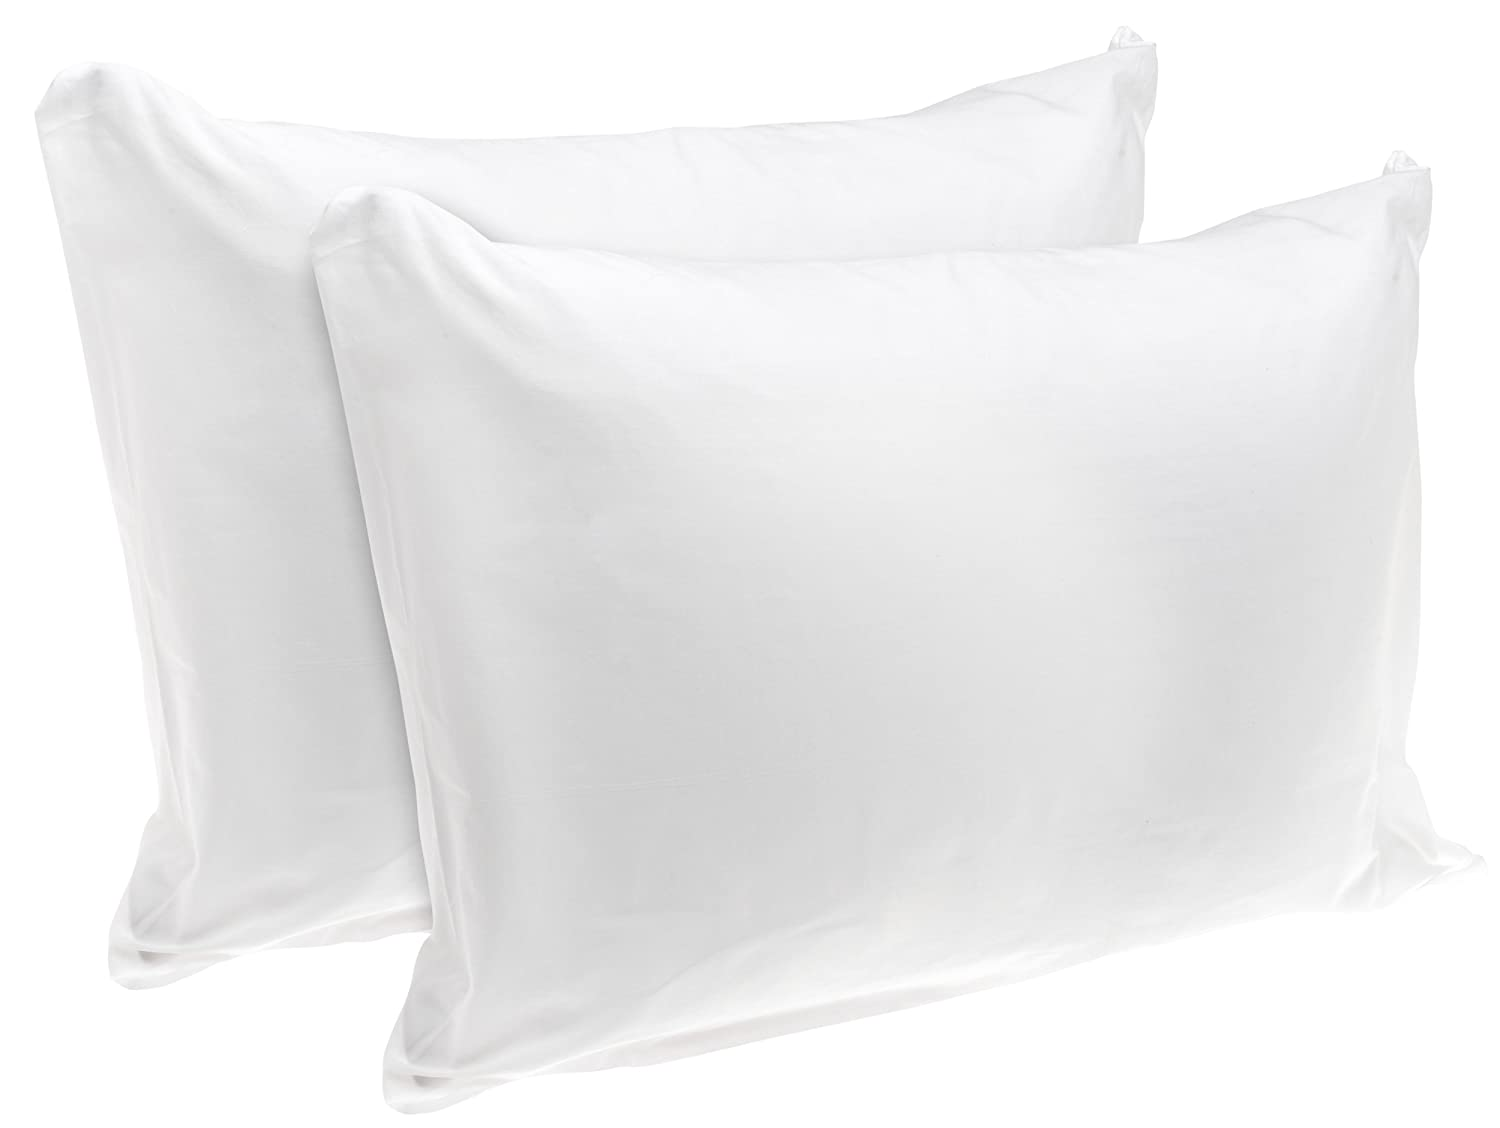 American Textile Rest Right 100% Cotton Zippered Pillow Protectors, Set of 2 - Zippered Pillow Covers Extend Pillow Life, Keeping Pillows Fresh and Clean, Queen Sized 96640L